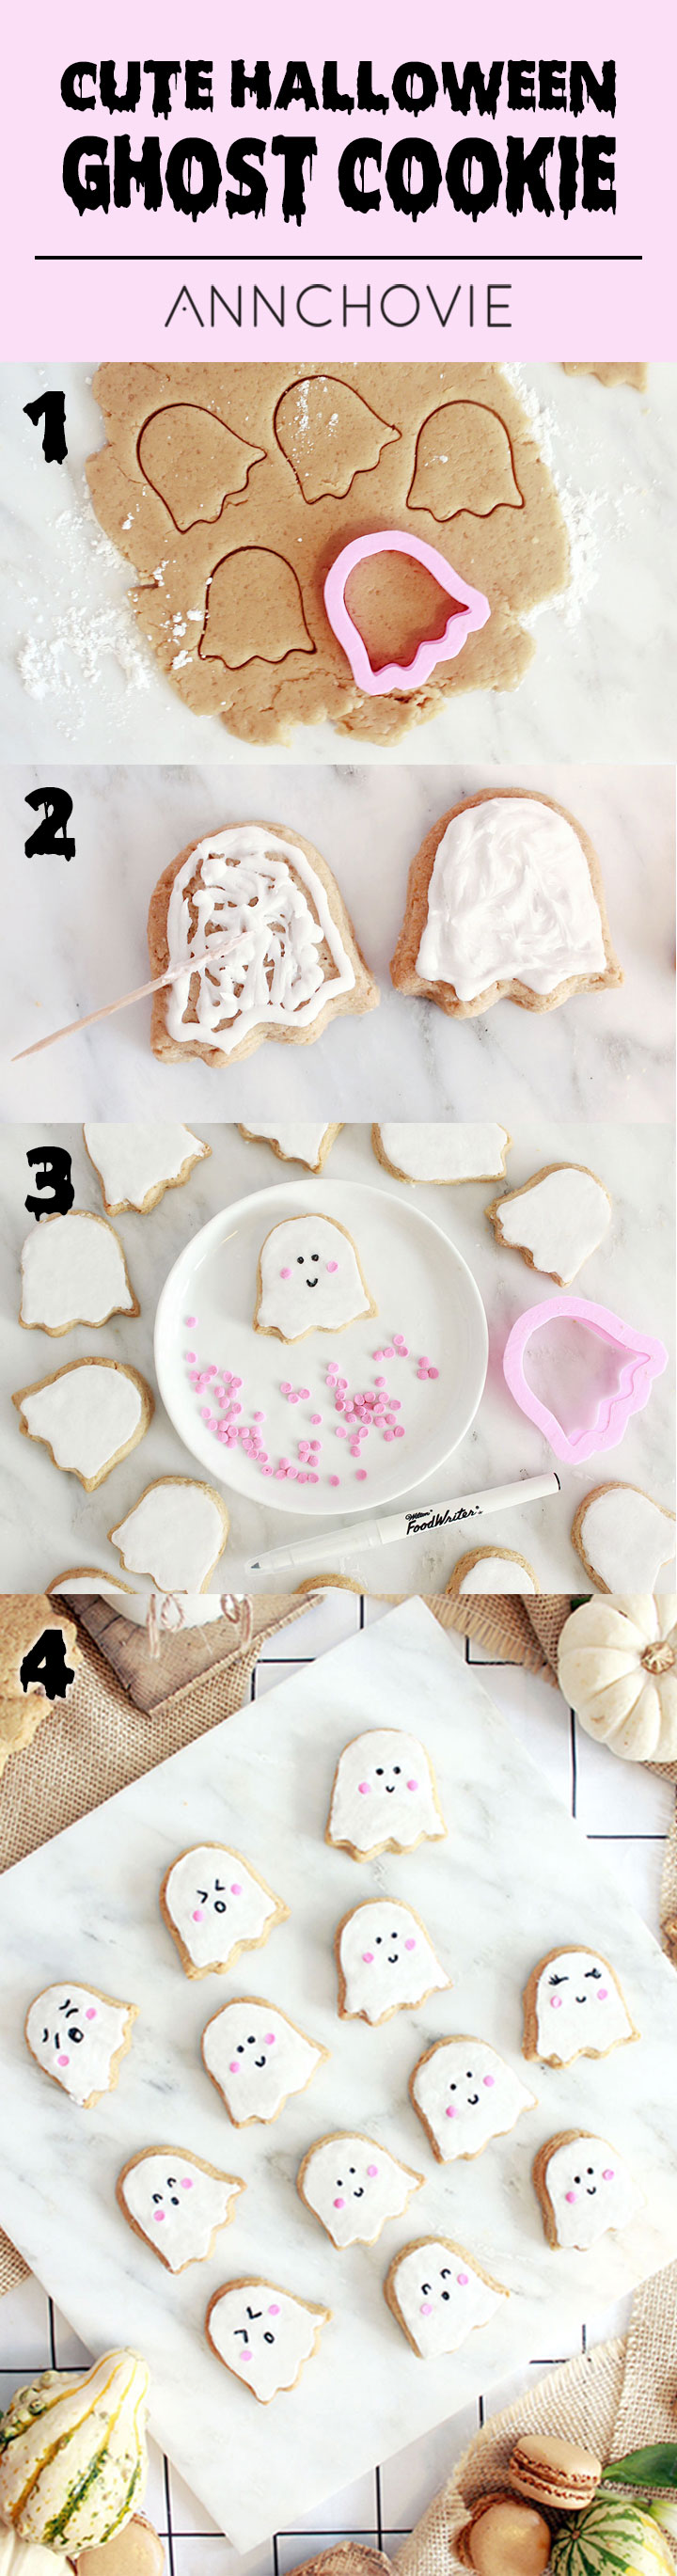 CUTE-HALLOWEEN-GHOST-COOKIE-RECIPE-O.jpg